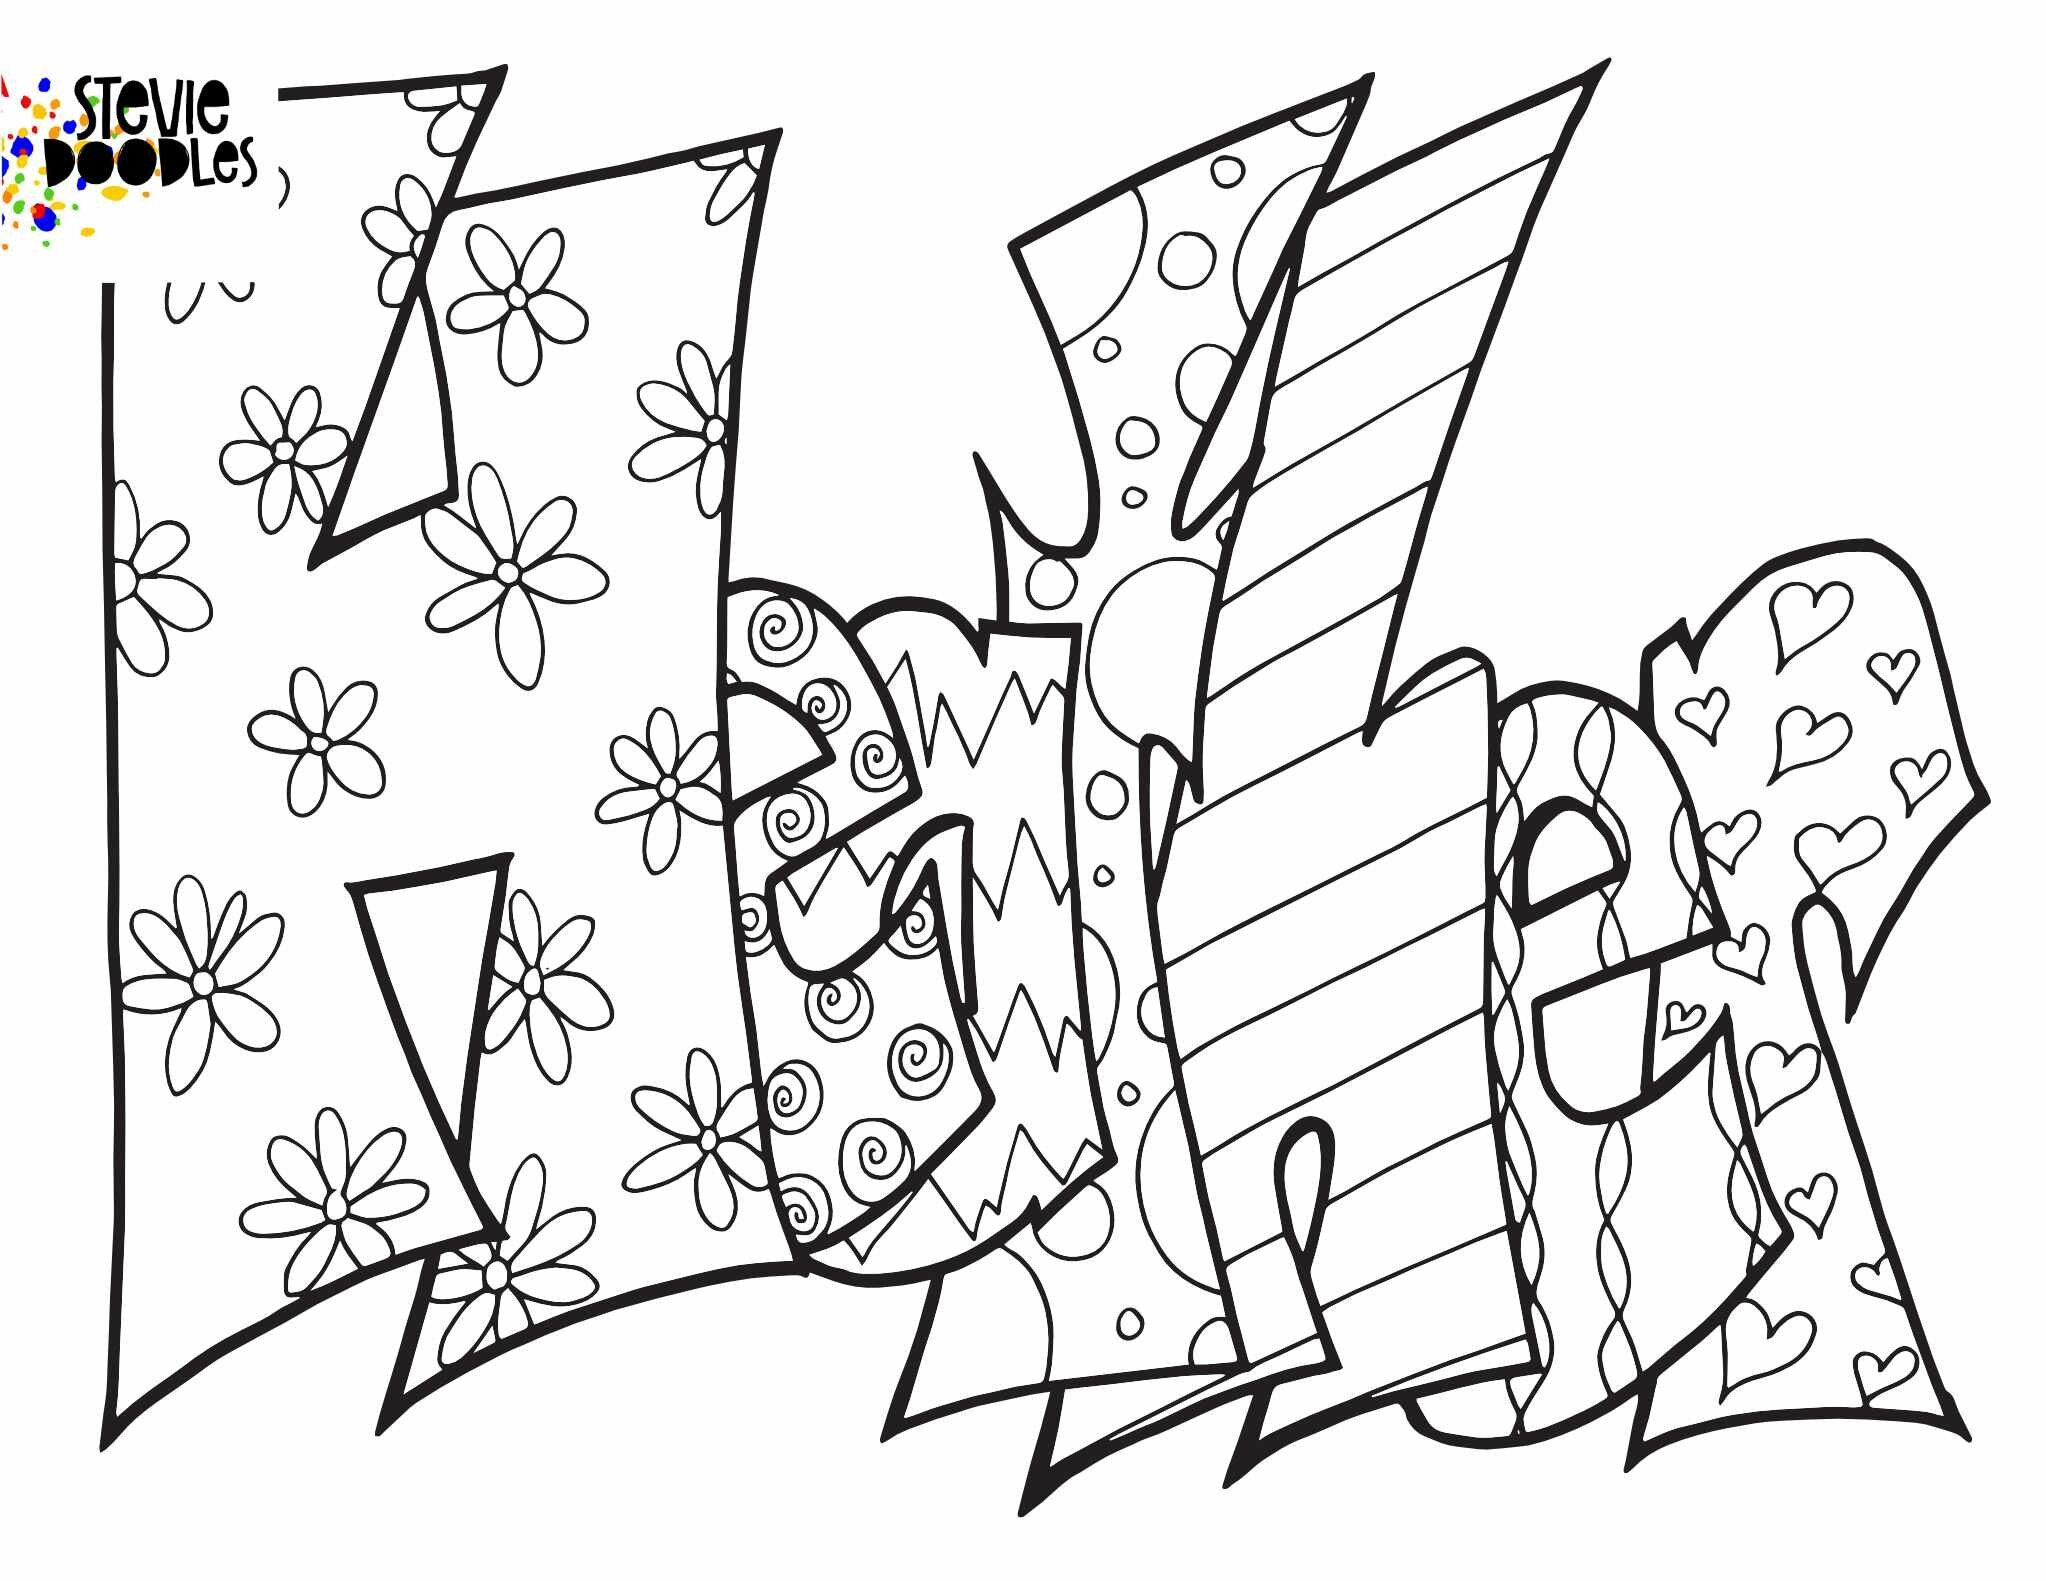 Heather Free Printable Coloring Page Stevie Doodles Free Printable Coloring Pages Coloring Pages Name Coloring Pages